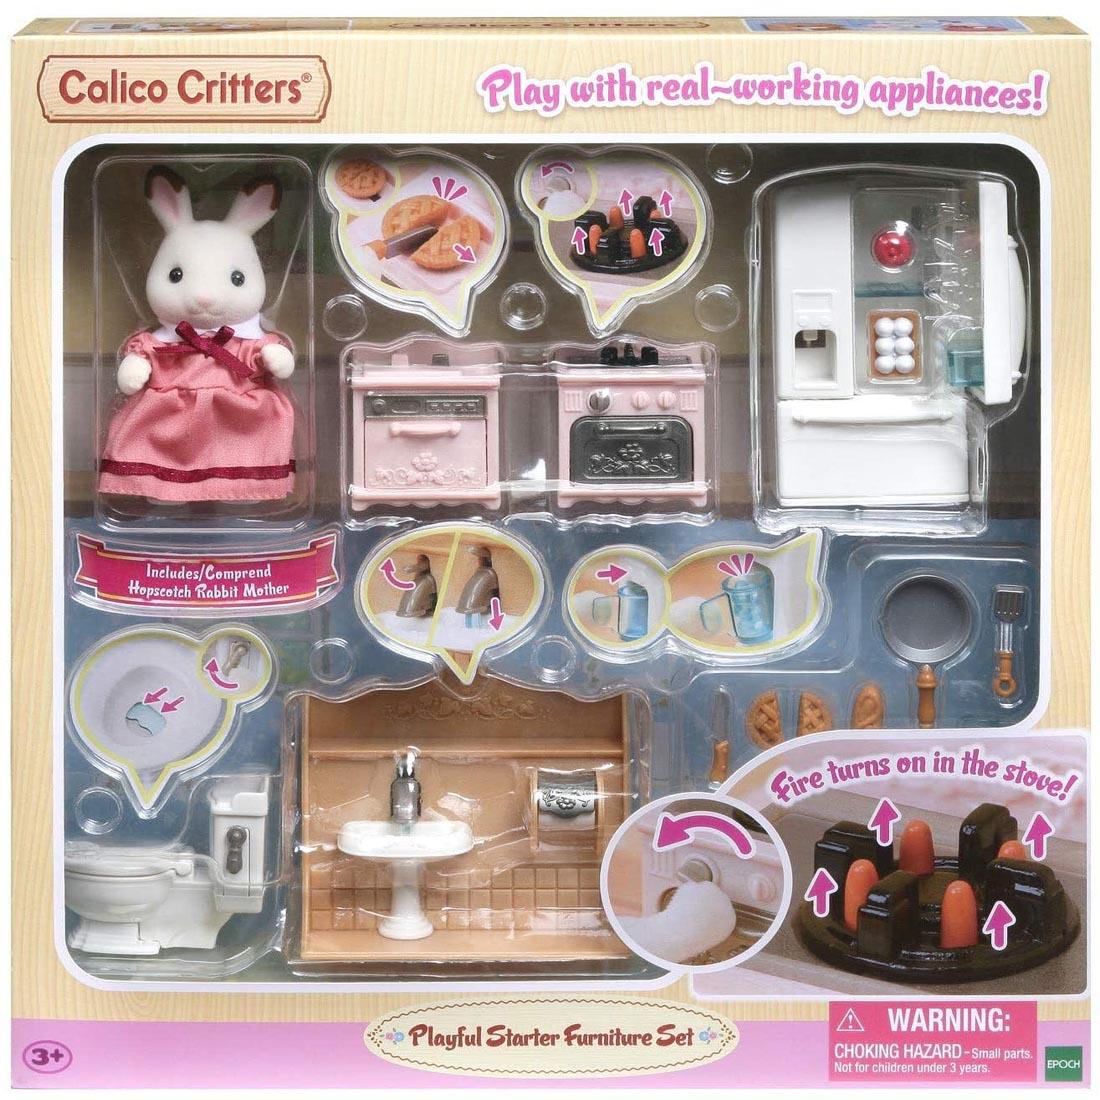 CALICO CRITTERS #1882 Playful Starter Furniture Set